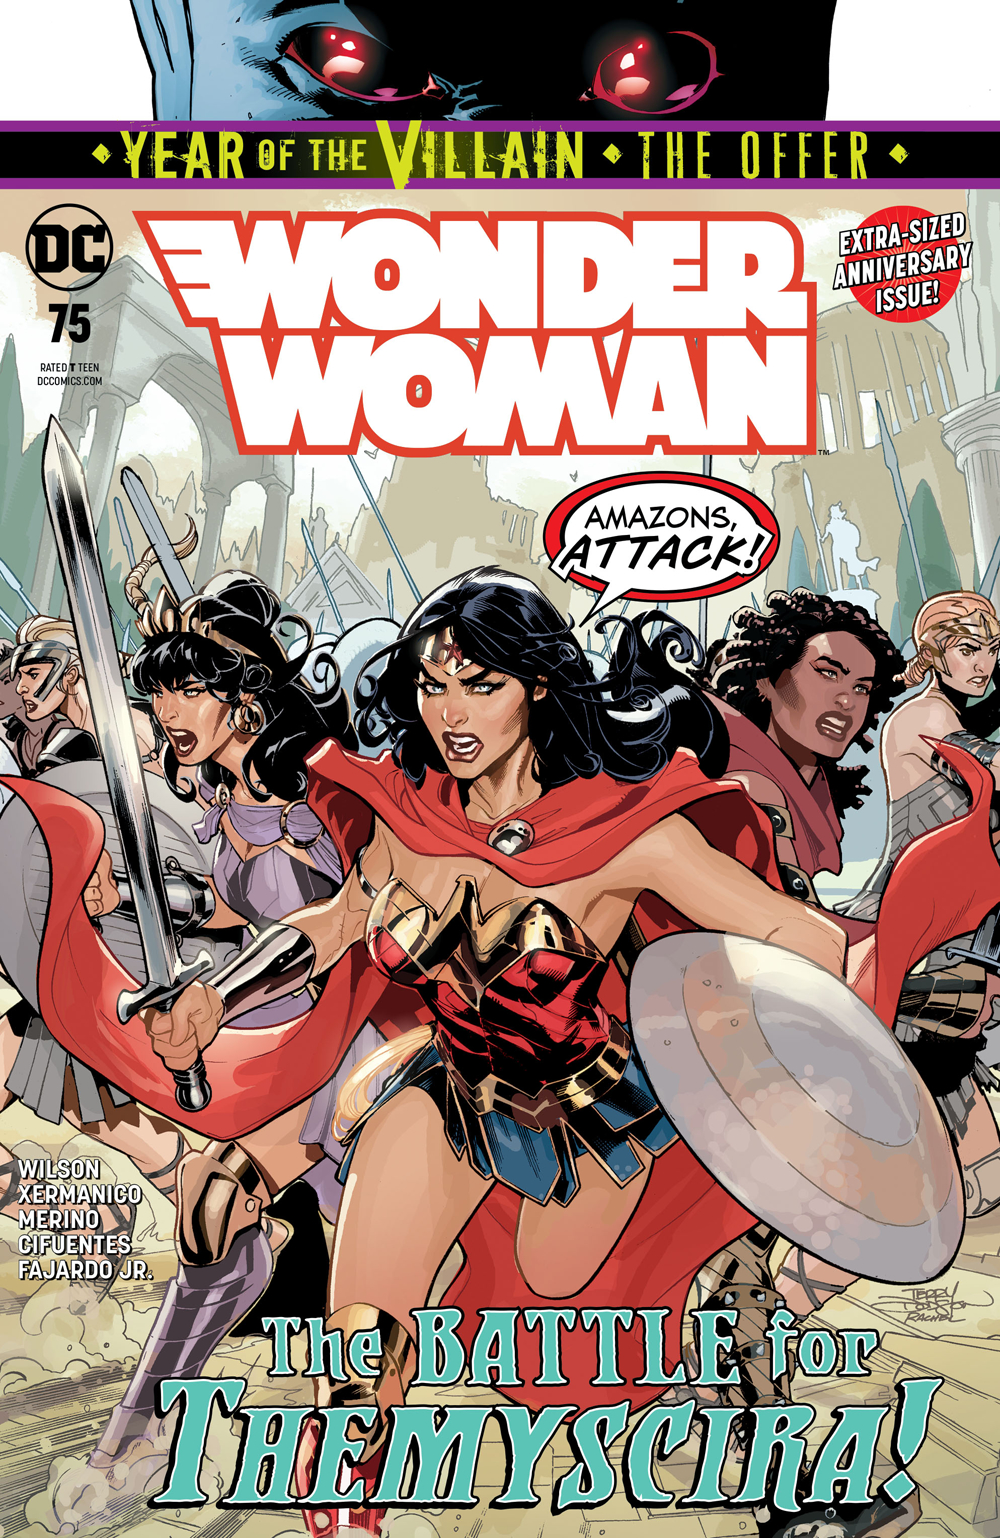 WONDER WOMAN #75 YOTV THE OFFER